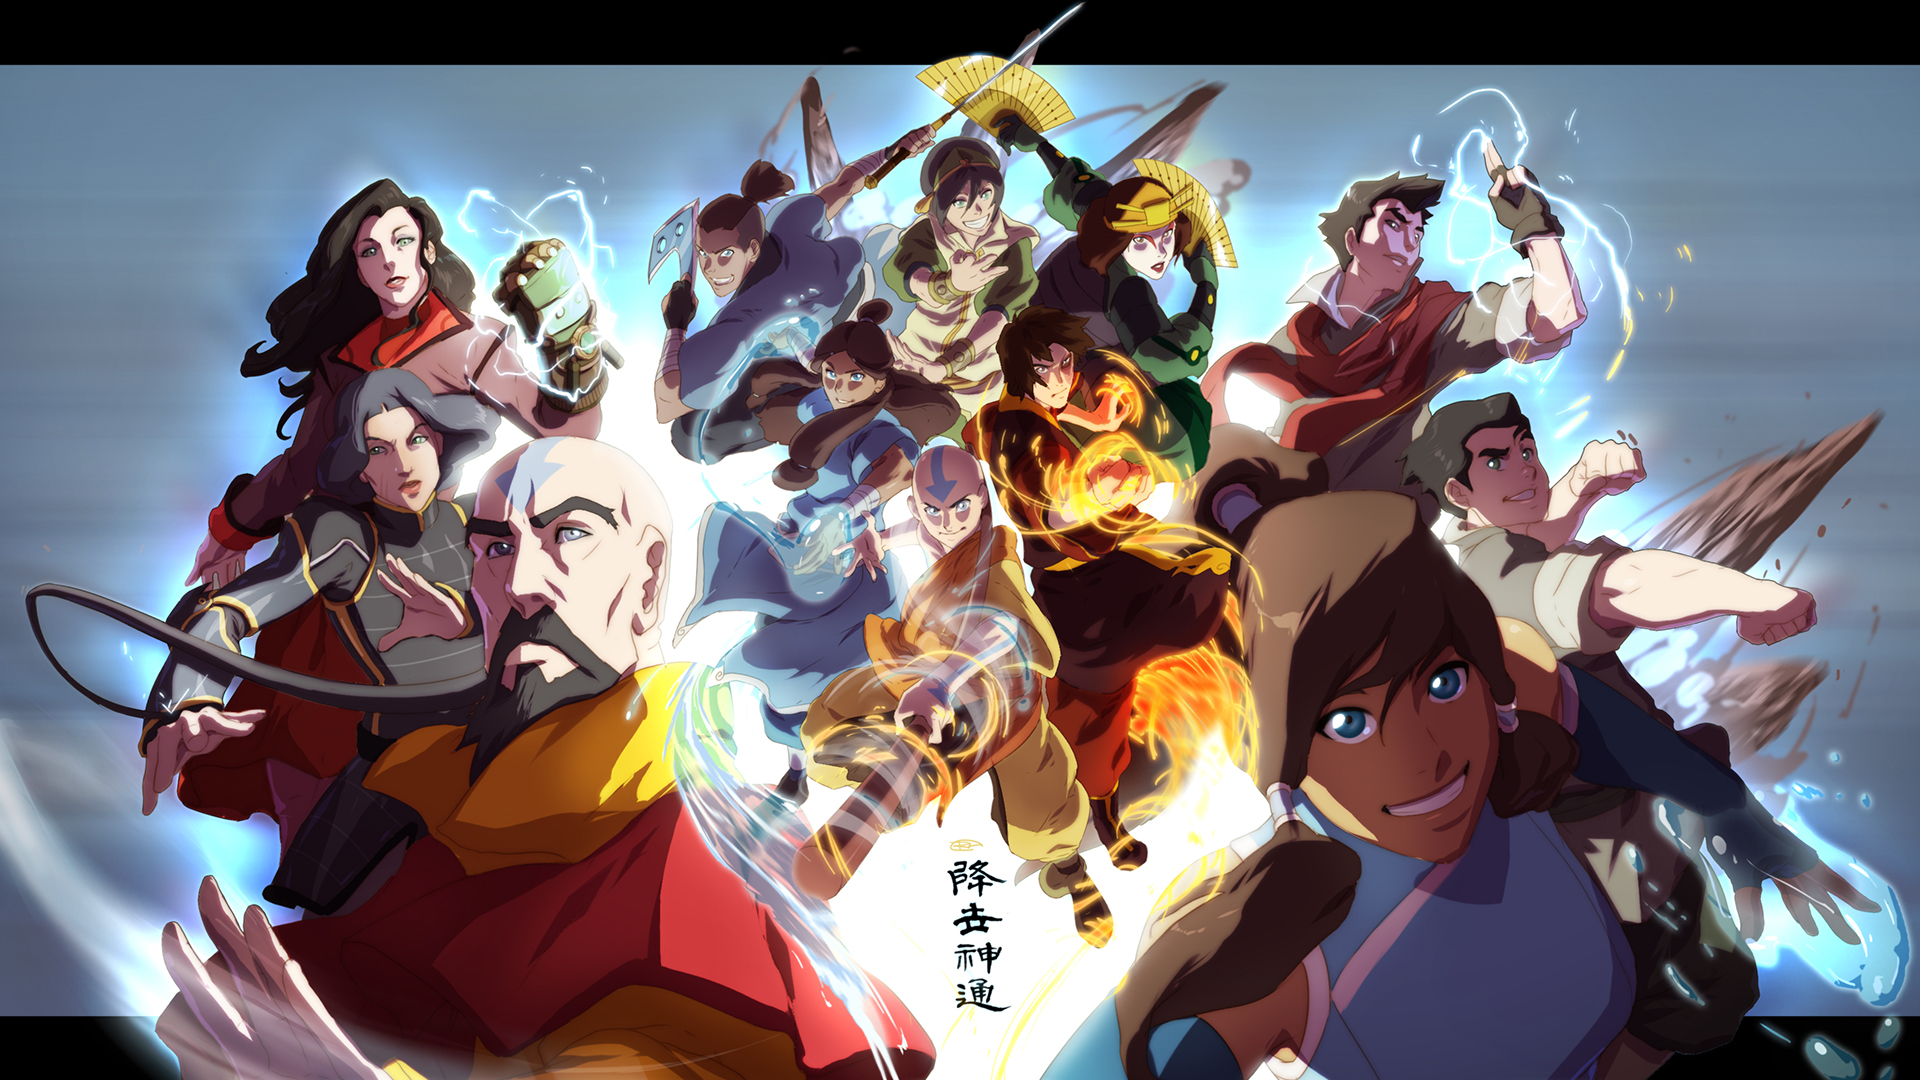 Avatar the legend of korra wallpaper zerochan anime image board cross over download cross over image voltagebd Images